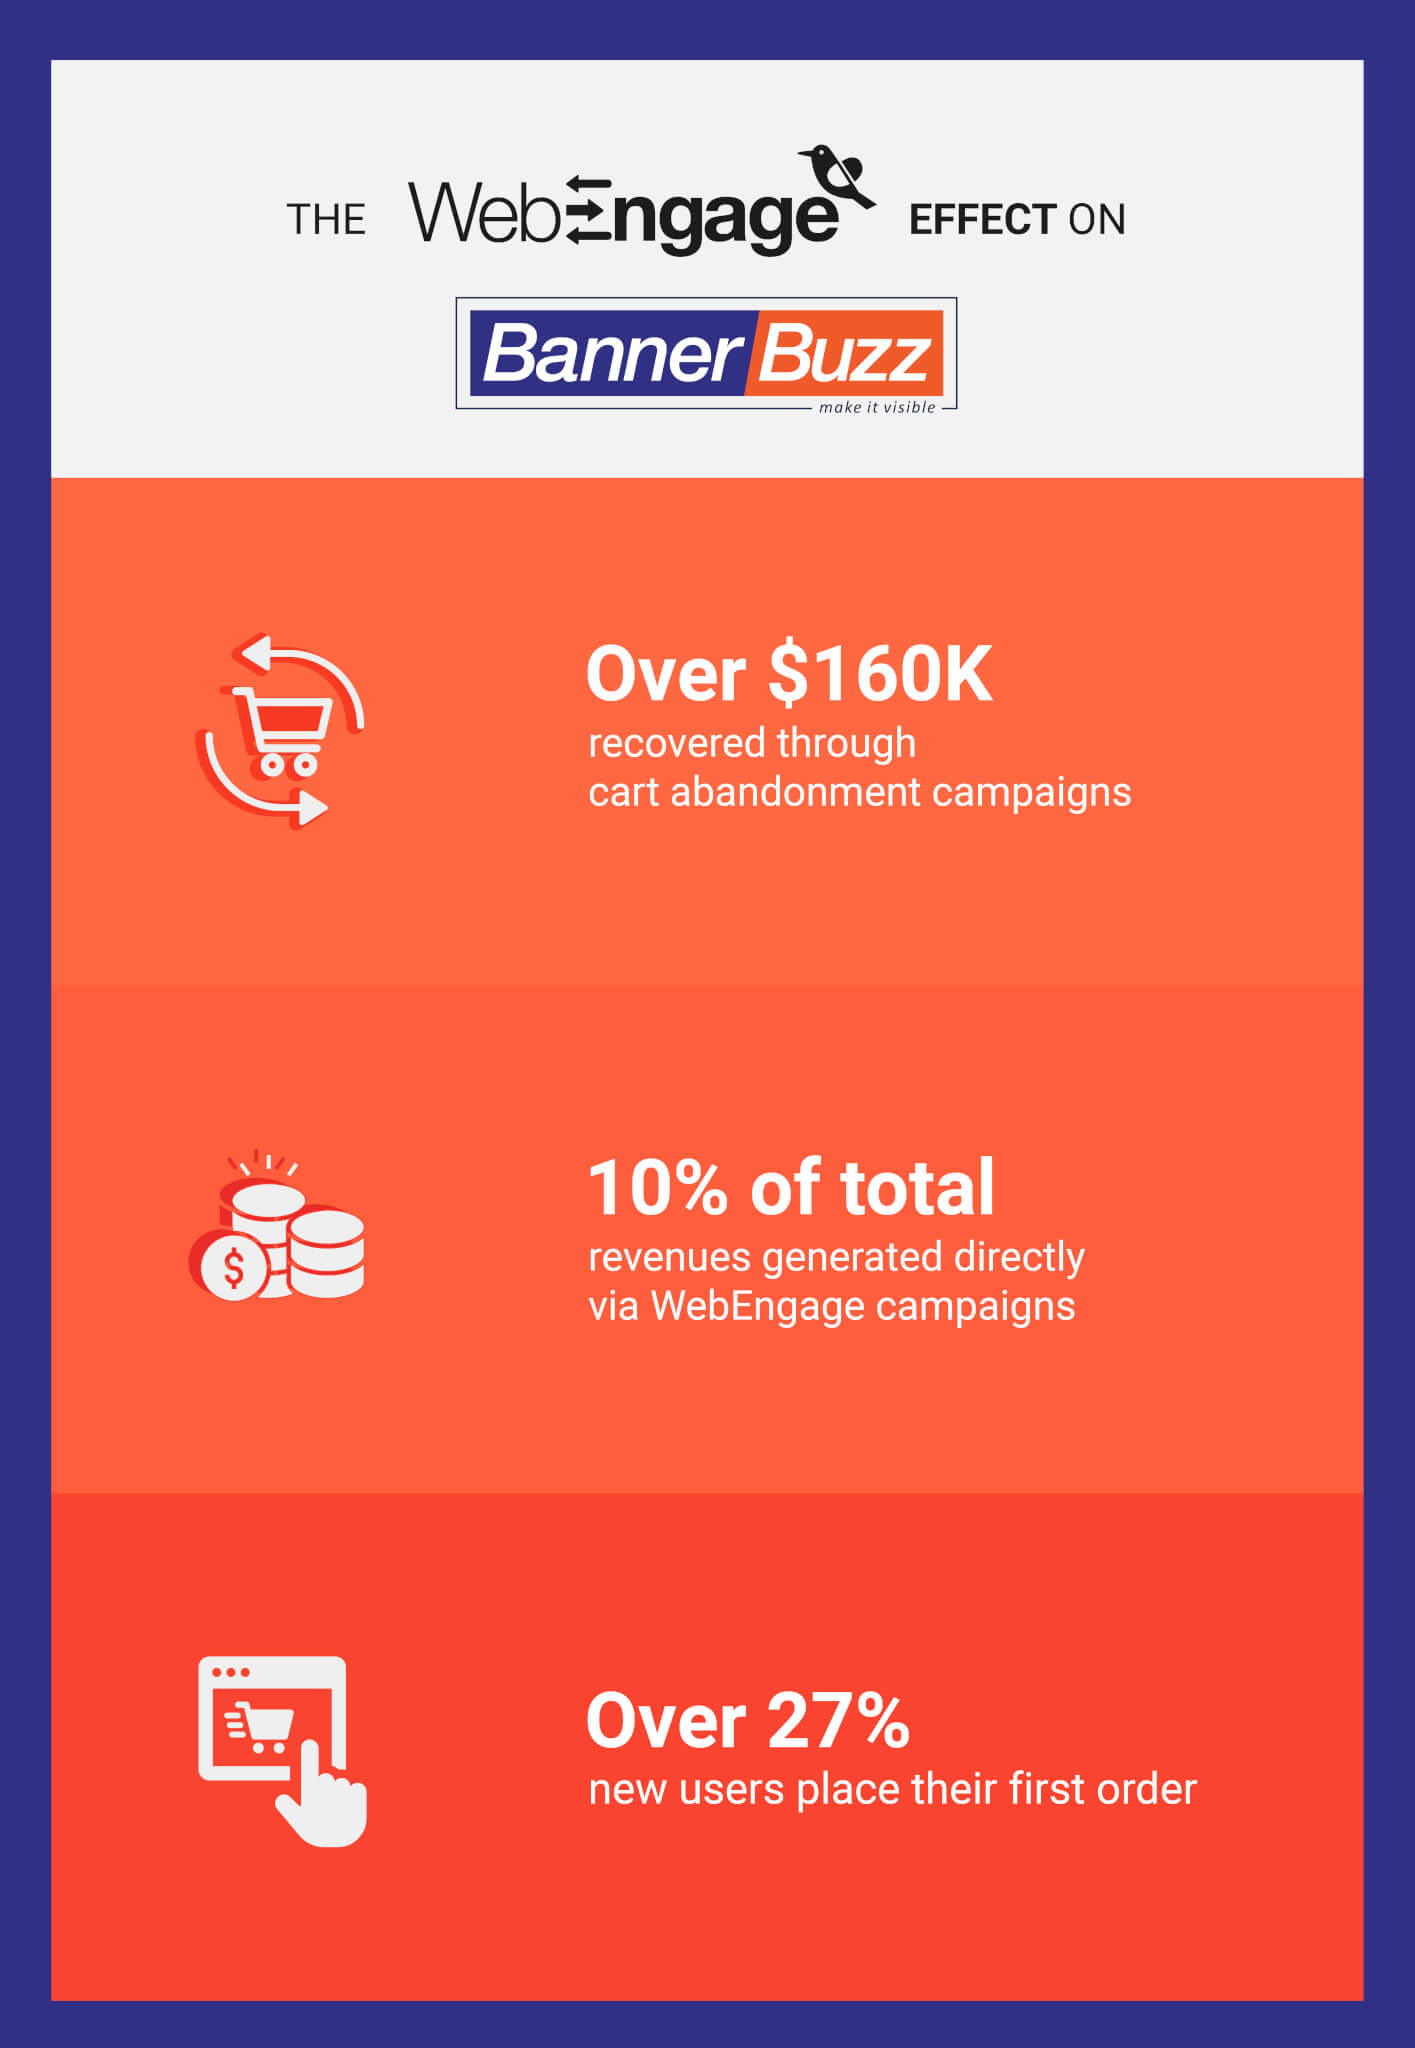 WebEngage generates 10% of total revenues for BannerBuzz | Case Study